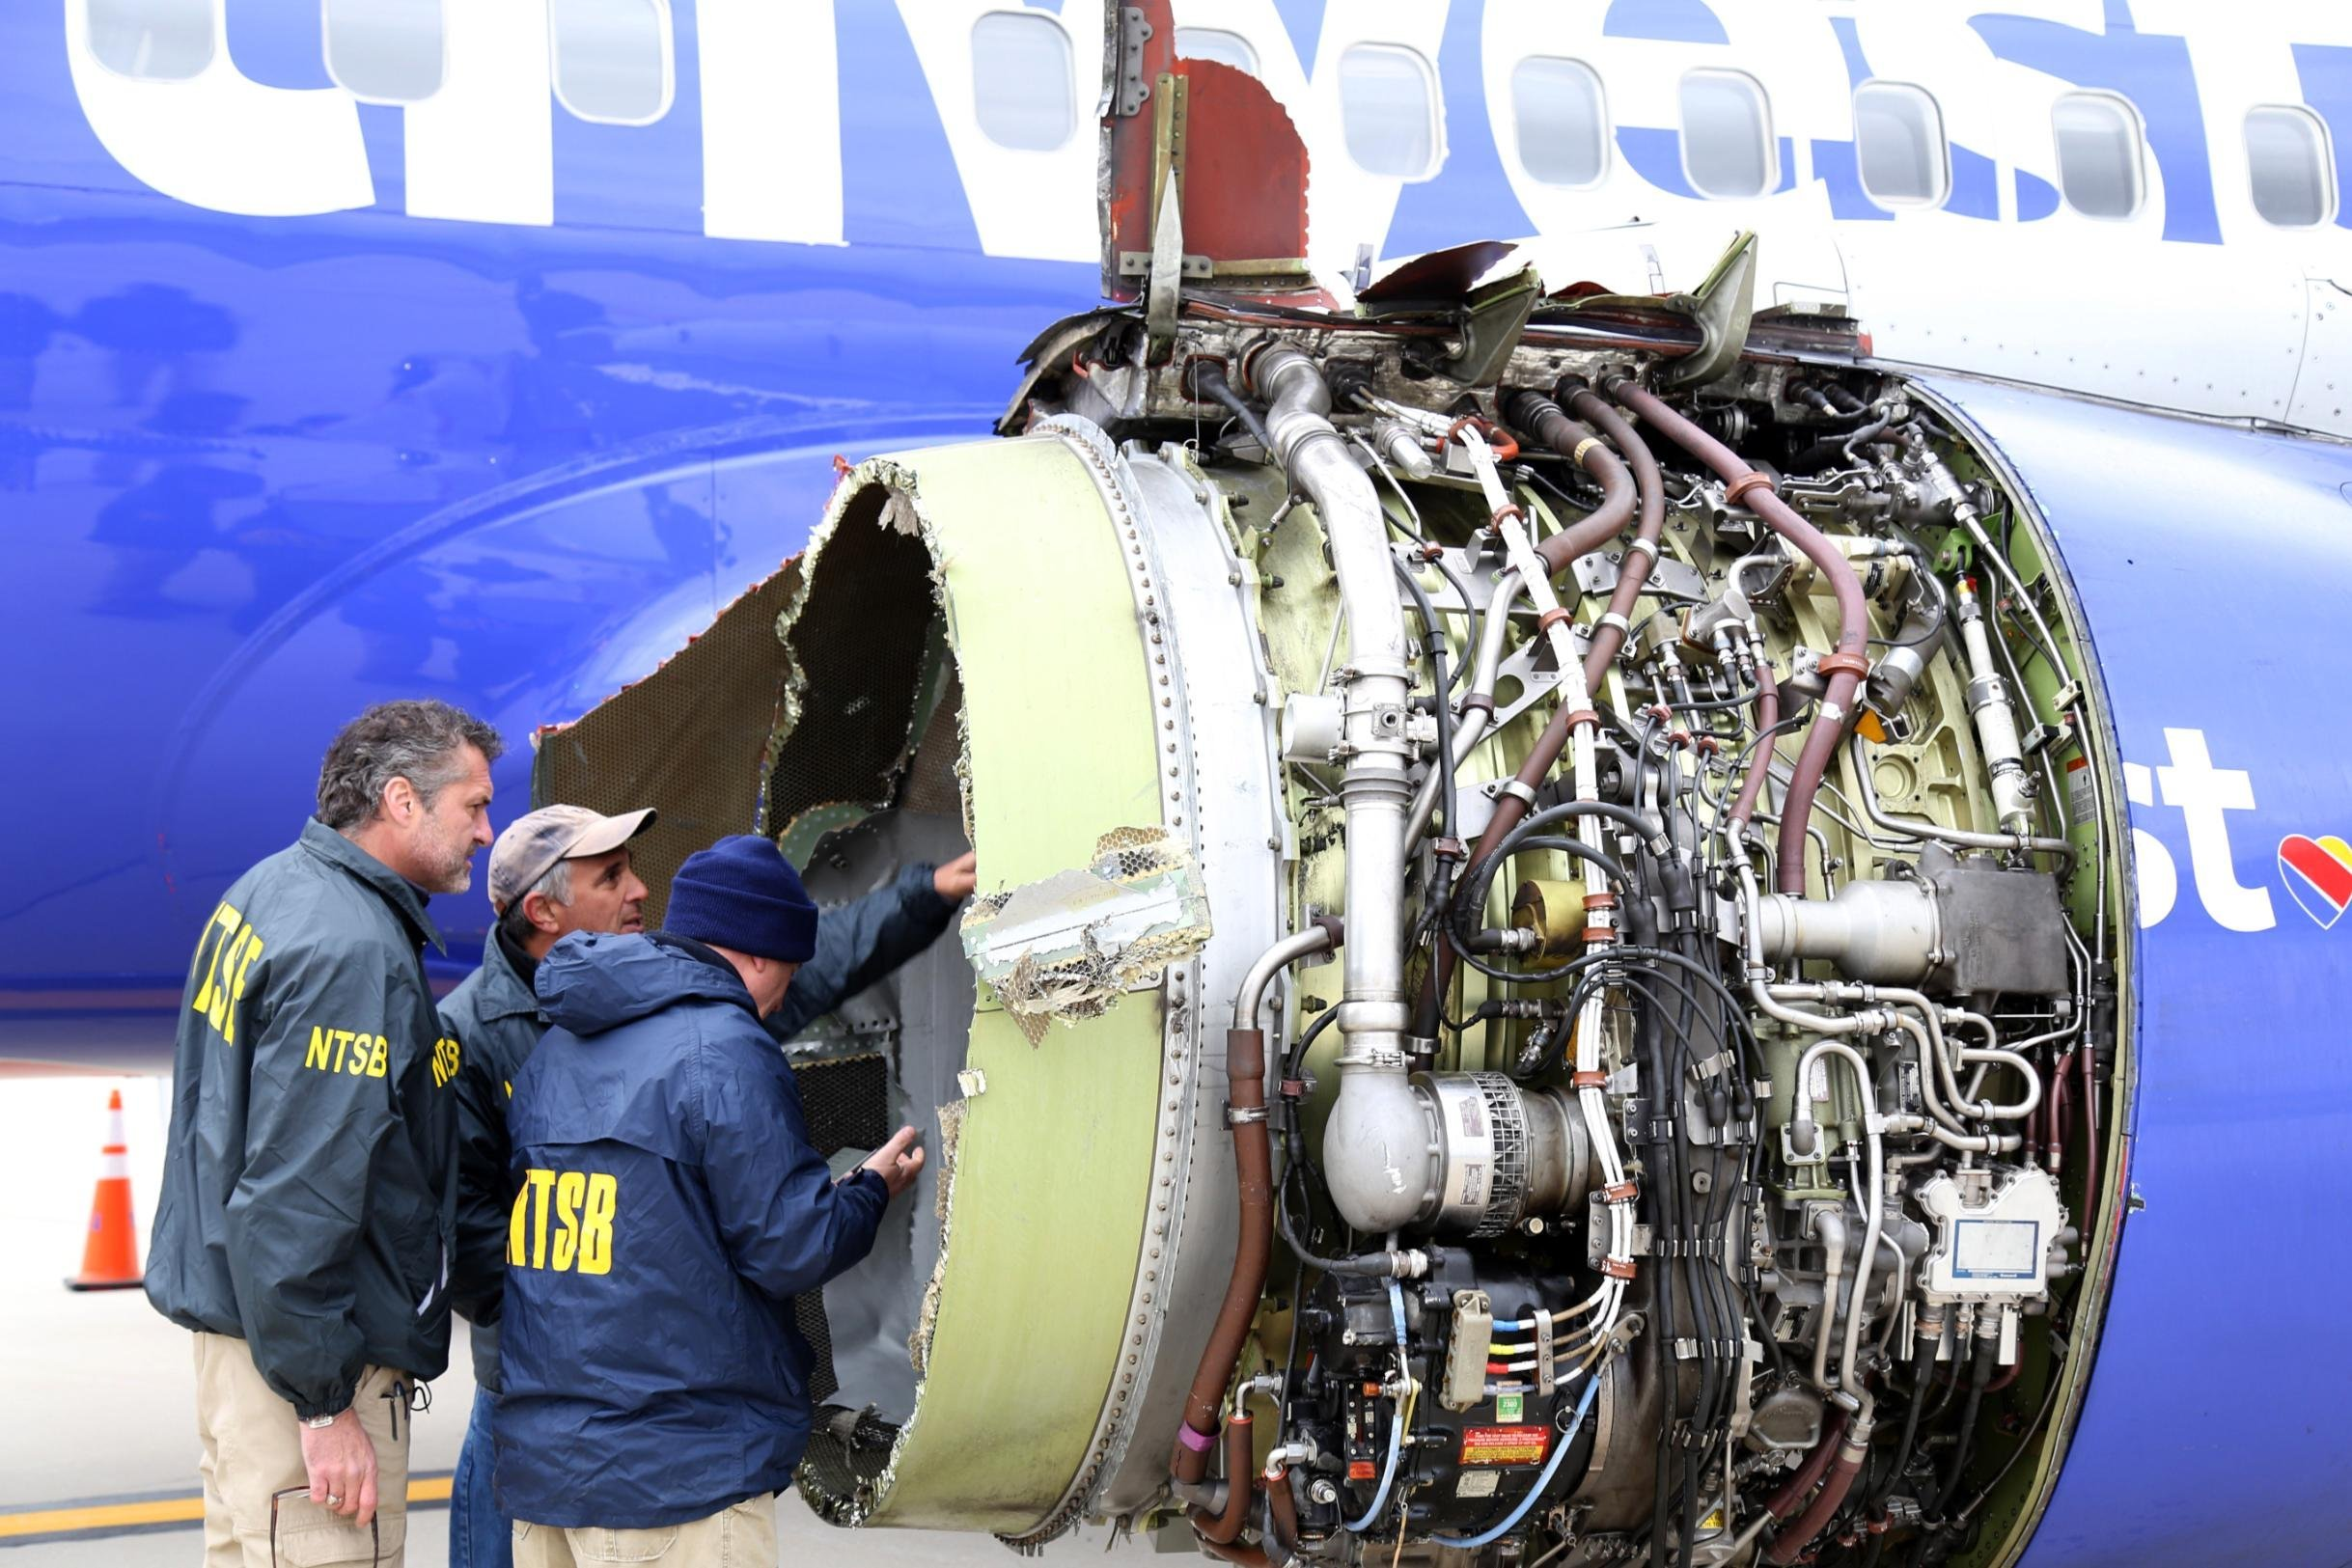 US aviation fatalities increased by 13% in 2018, NTSB says